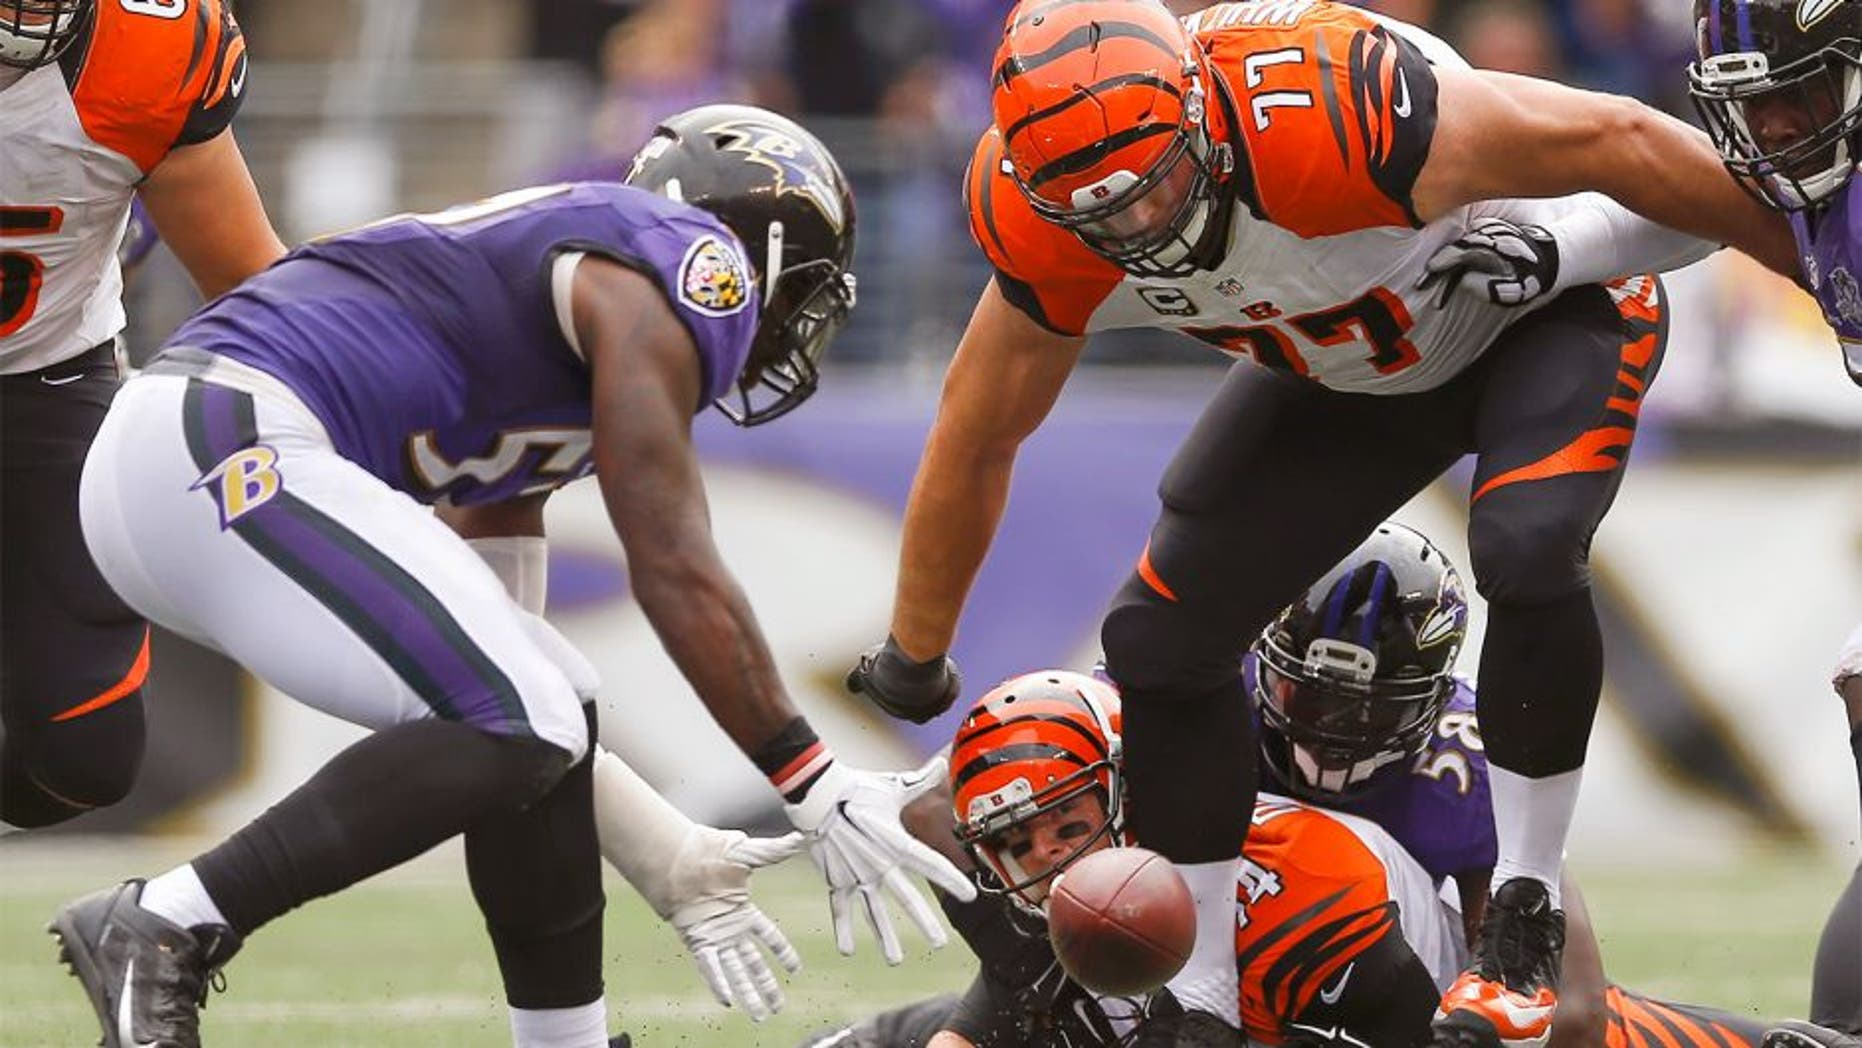 Baltimore Ravens inside linebacker C.J. Mosley (57) under pressure from Cincinnati Bengals tackle Andrew Whitworth (77) scoops up a fumble by quarterback Andy Dalton (14) and carries into the end zone for a touchdown during the second half of an NFL football game in Baltimore, Sunday, Sept. 27, 2015. (AP Photo/Patrick Semansky)